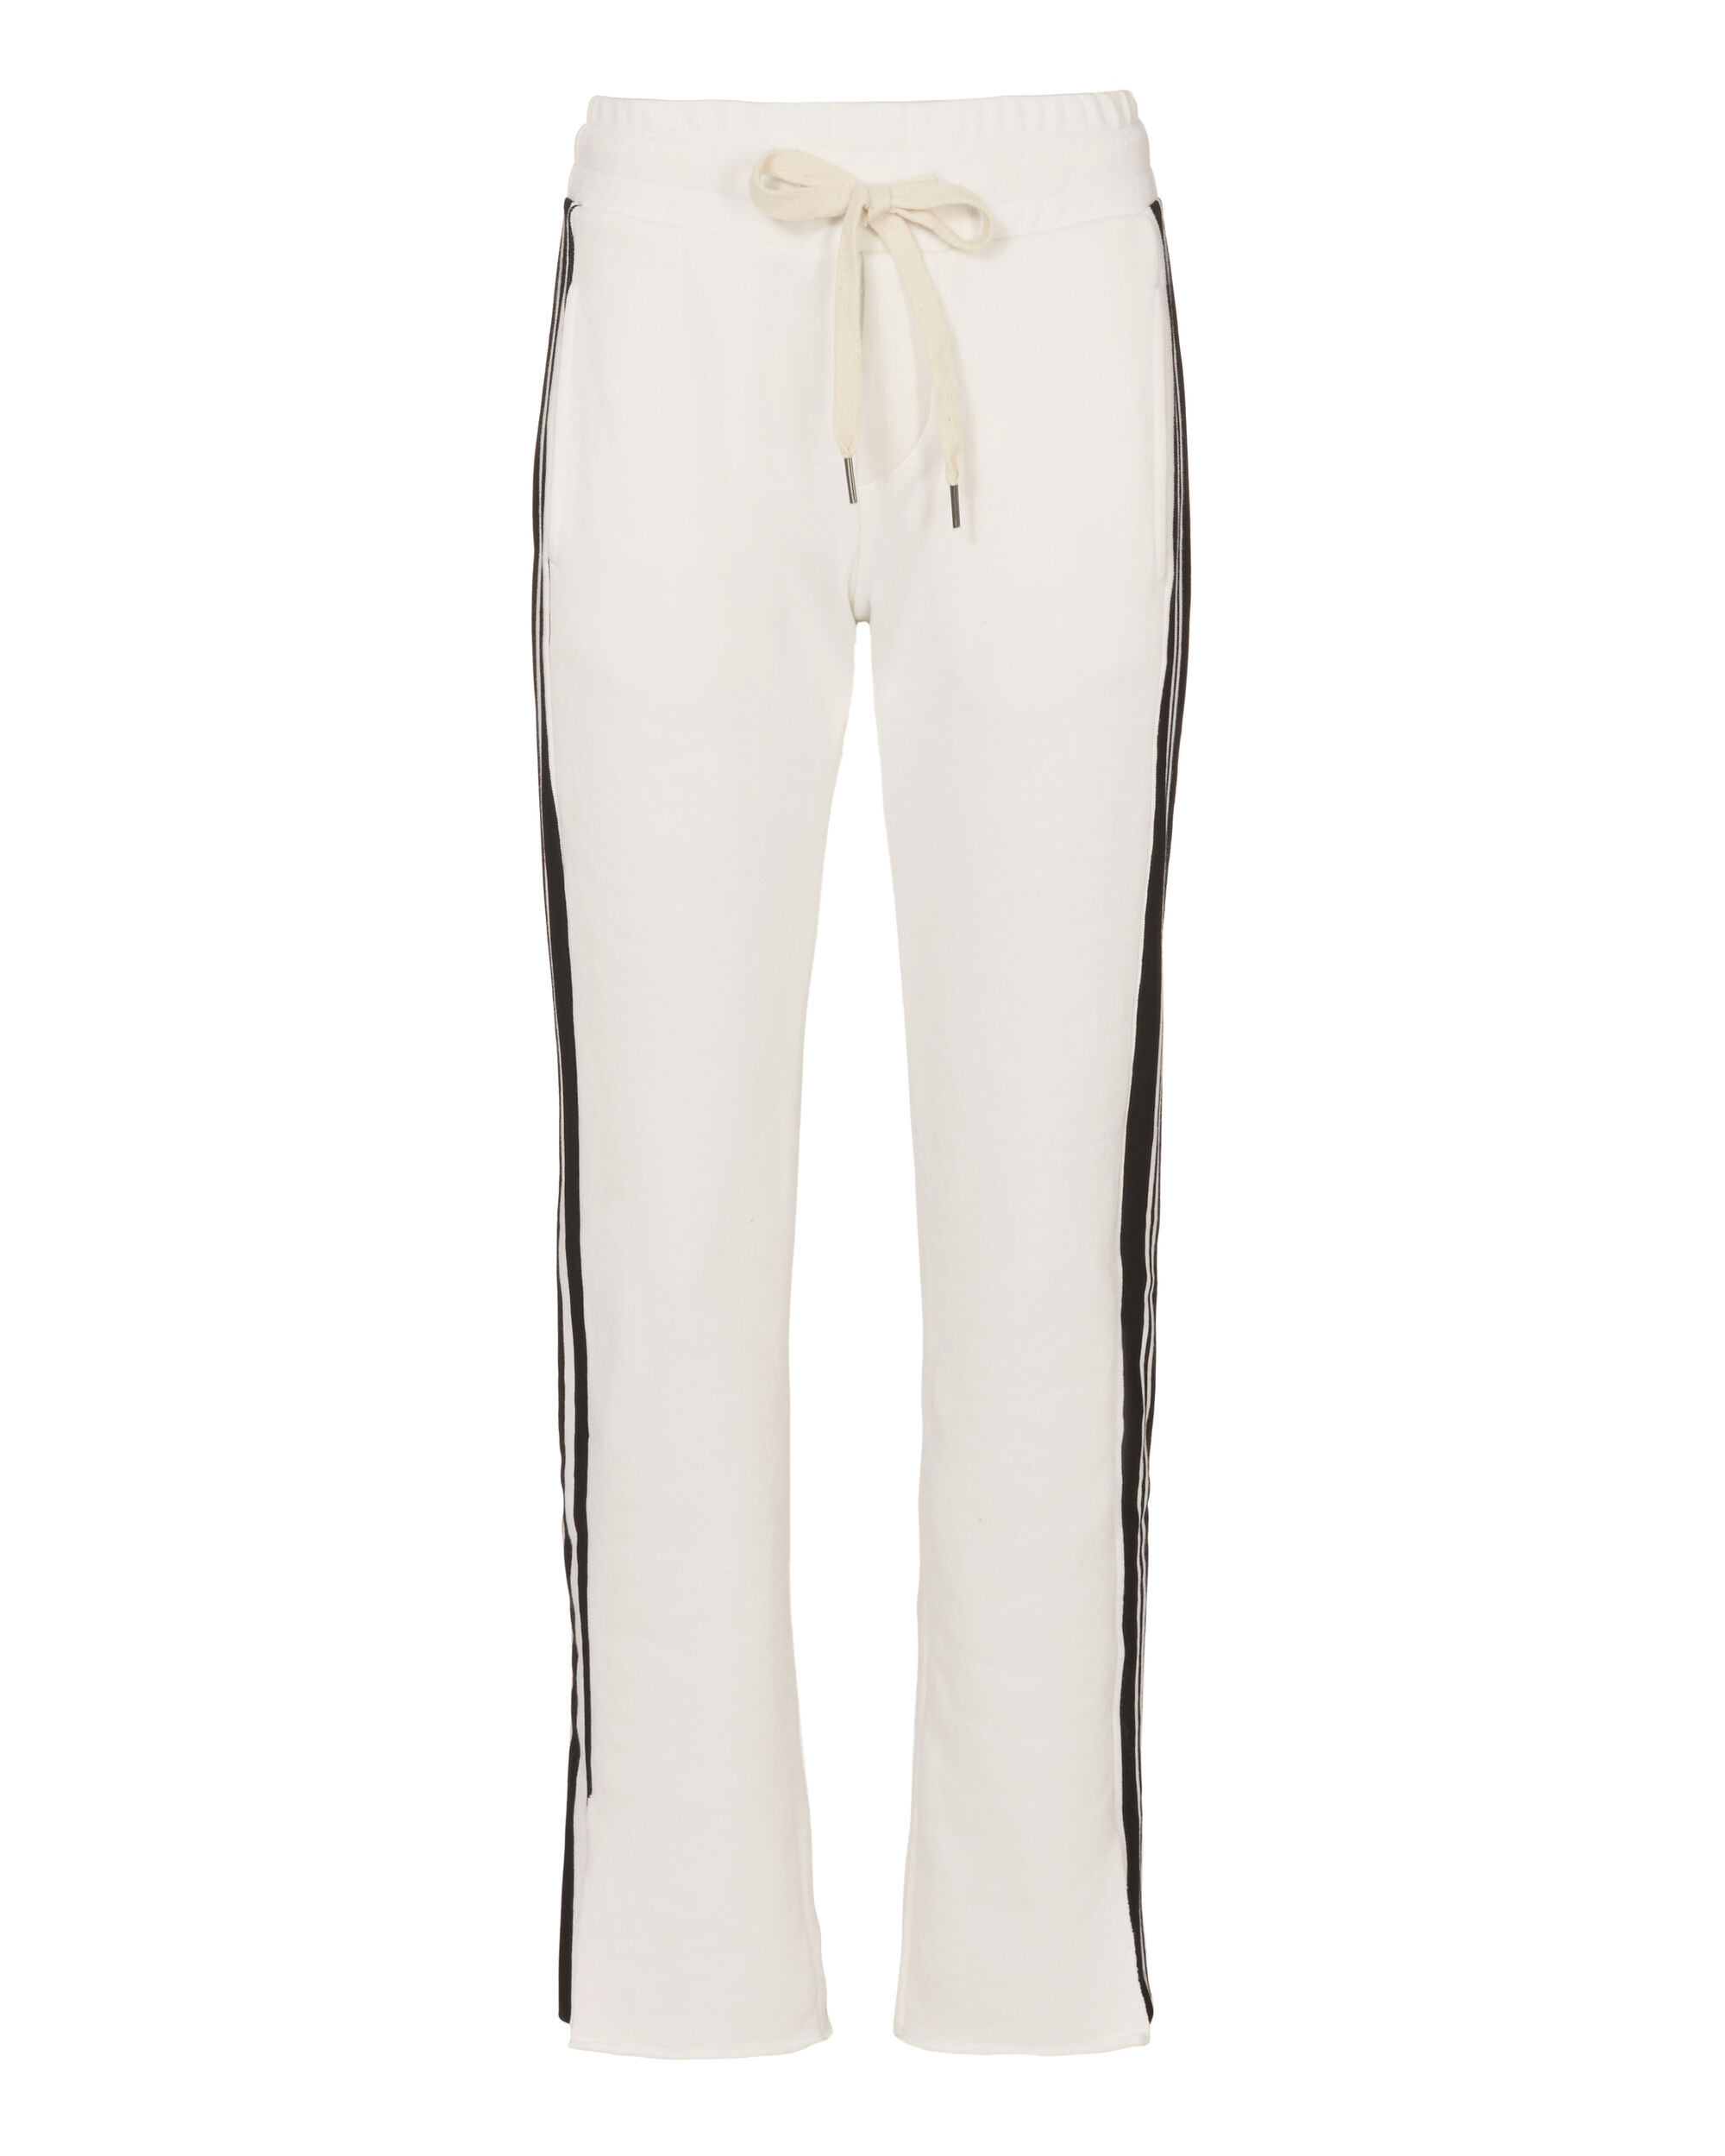 Striped Rib Track Pants, WHITE, hi-res